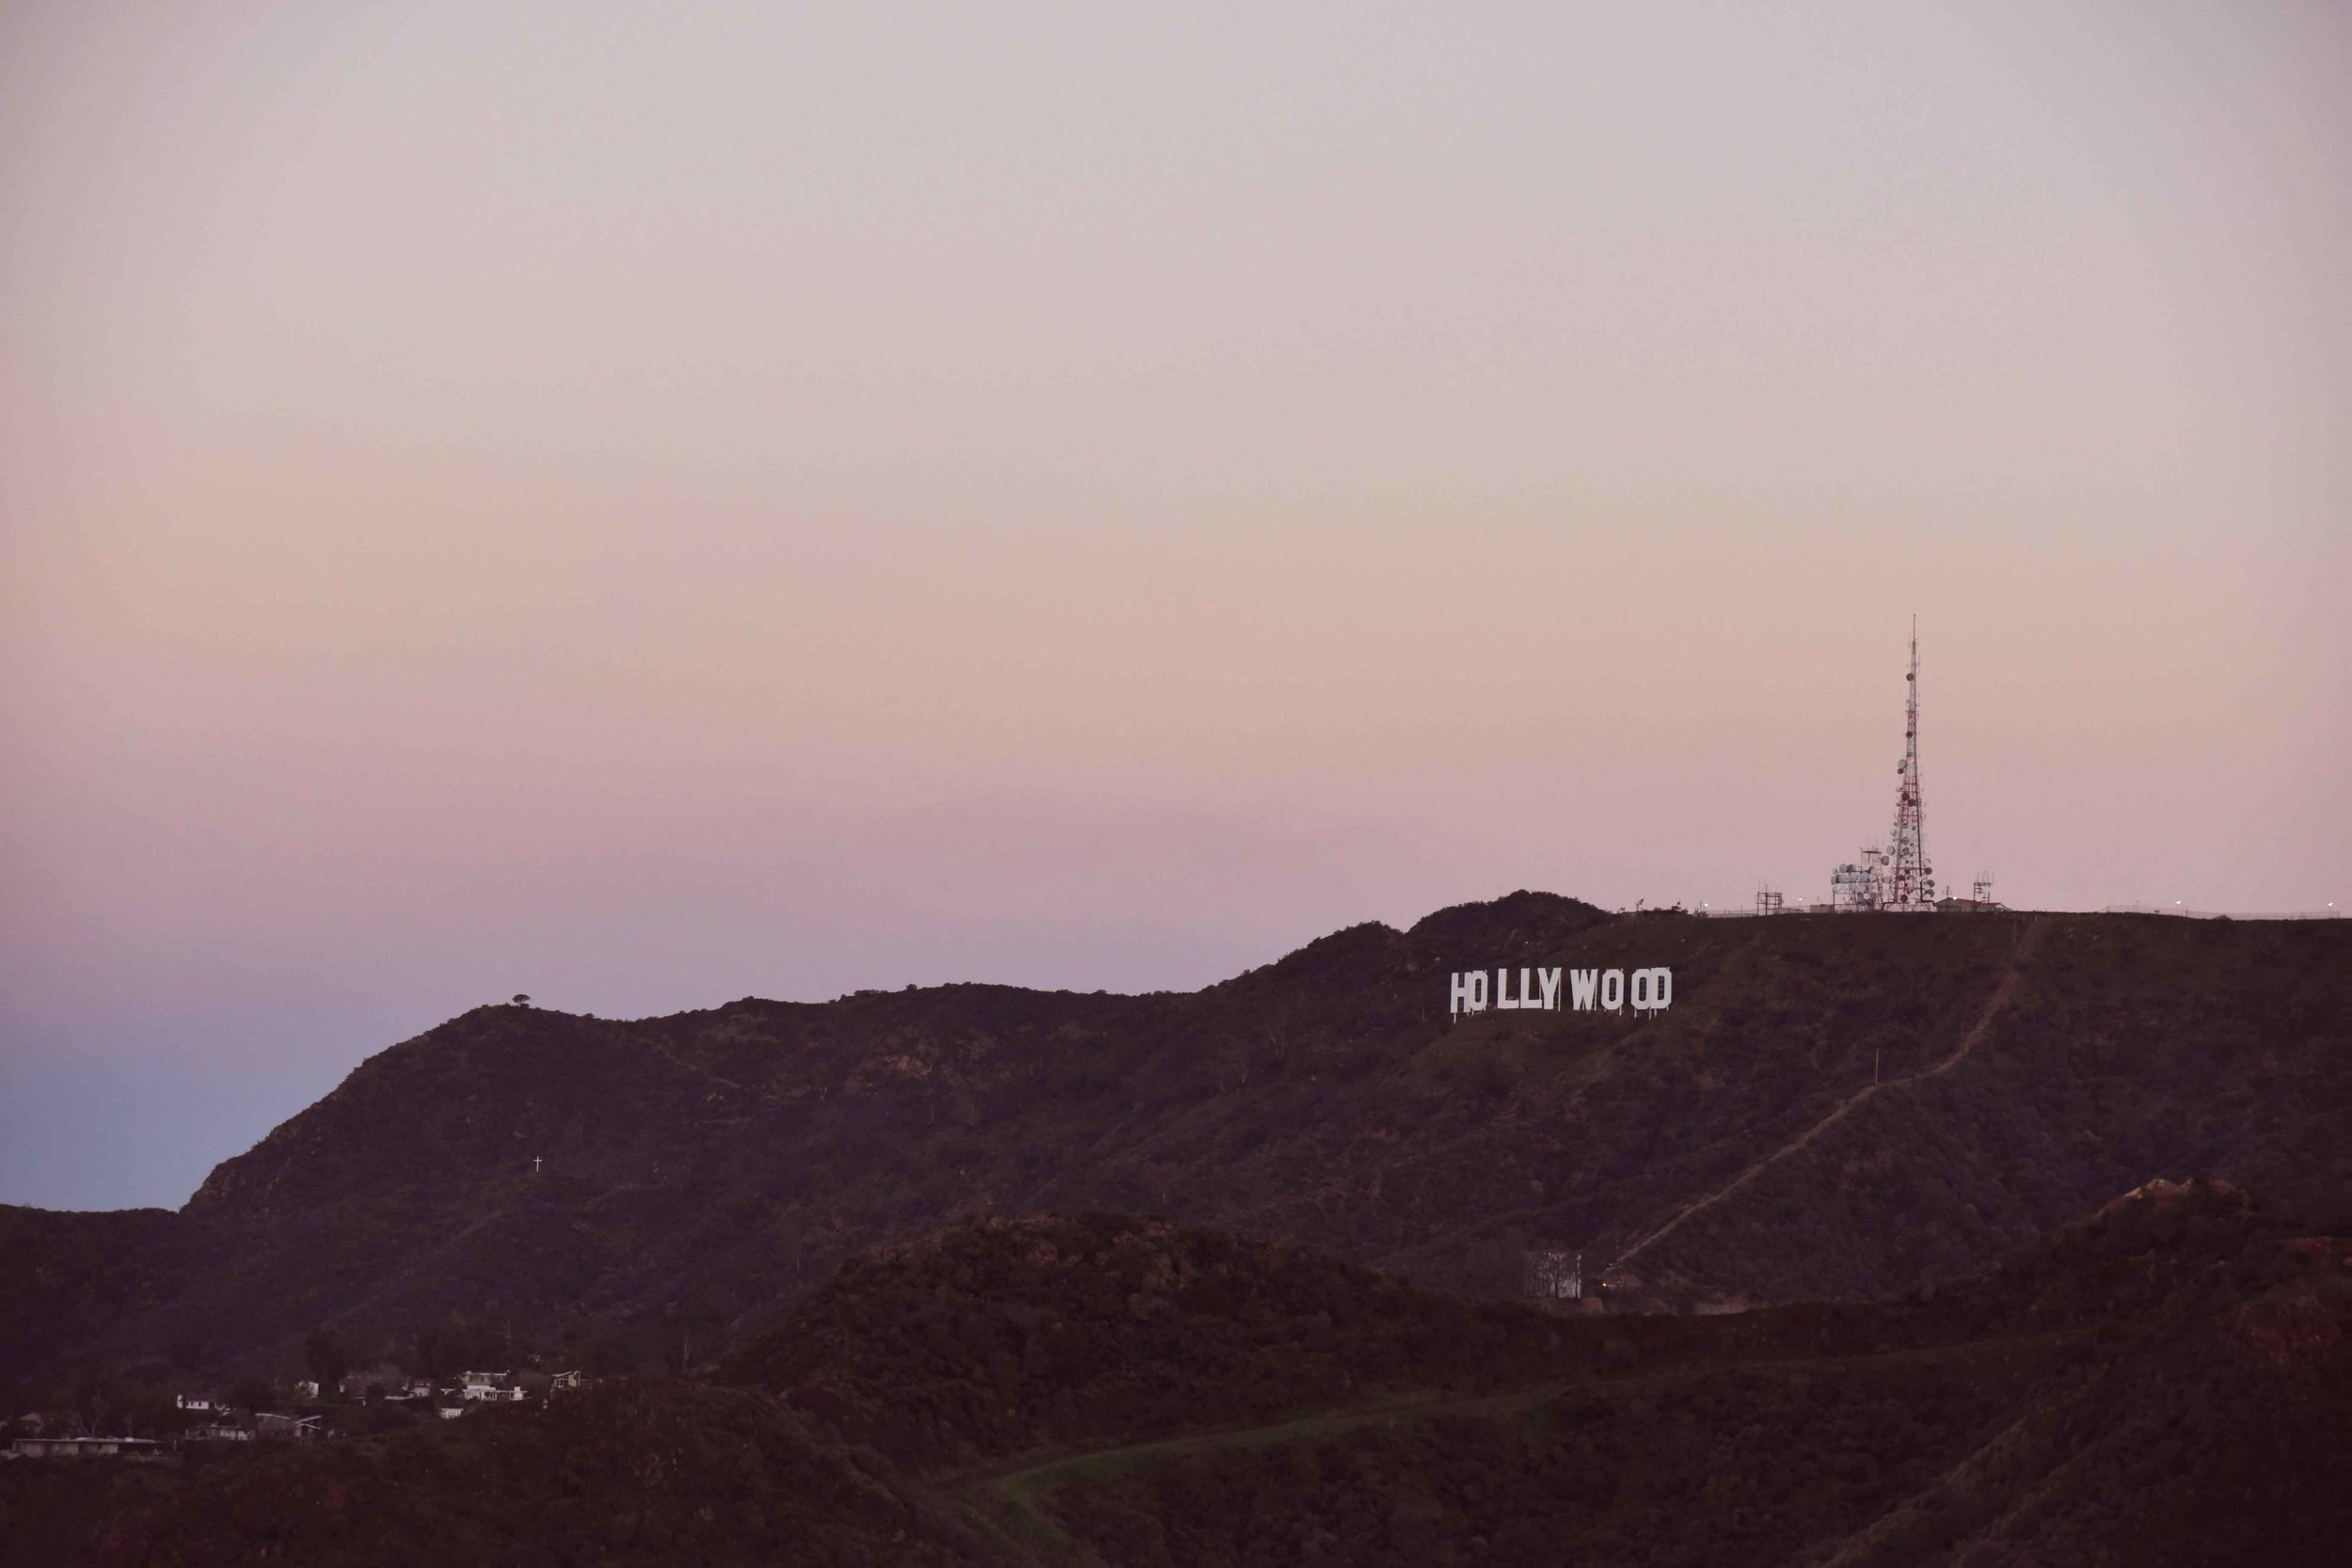 Sunrise from Griffith Park Observatory, Hollywood sign, Los Angeles, California. Image©thingstodot.com